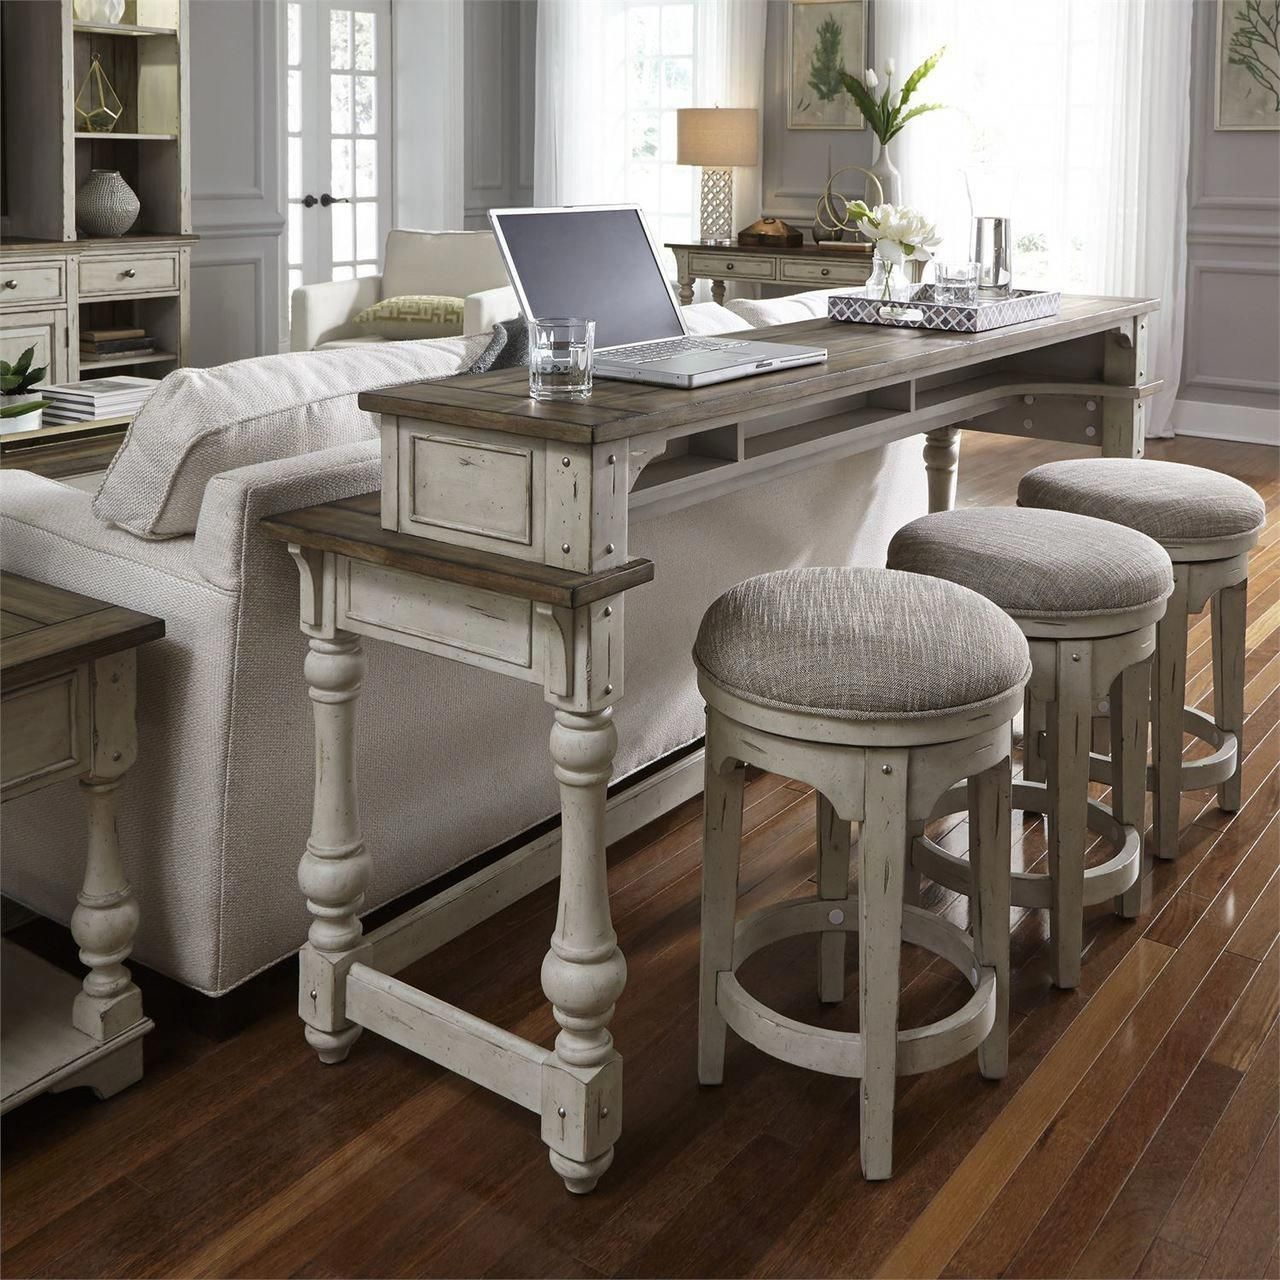 Antique White 4 Piece Console/Bar Stool Set - FREE SHIPPING - High Point-Discount #furniture  #fitne...